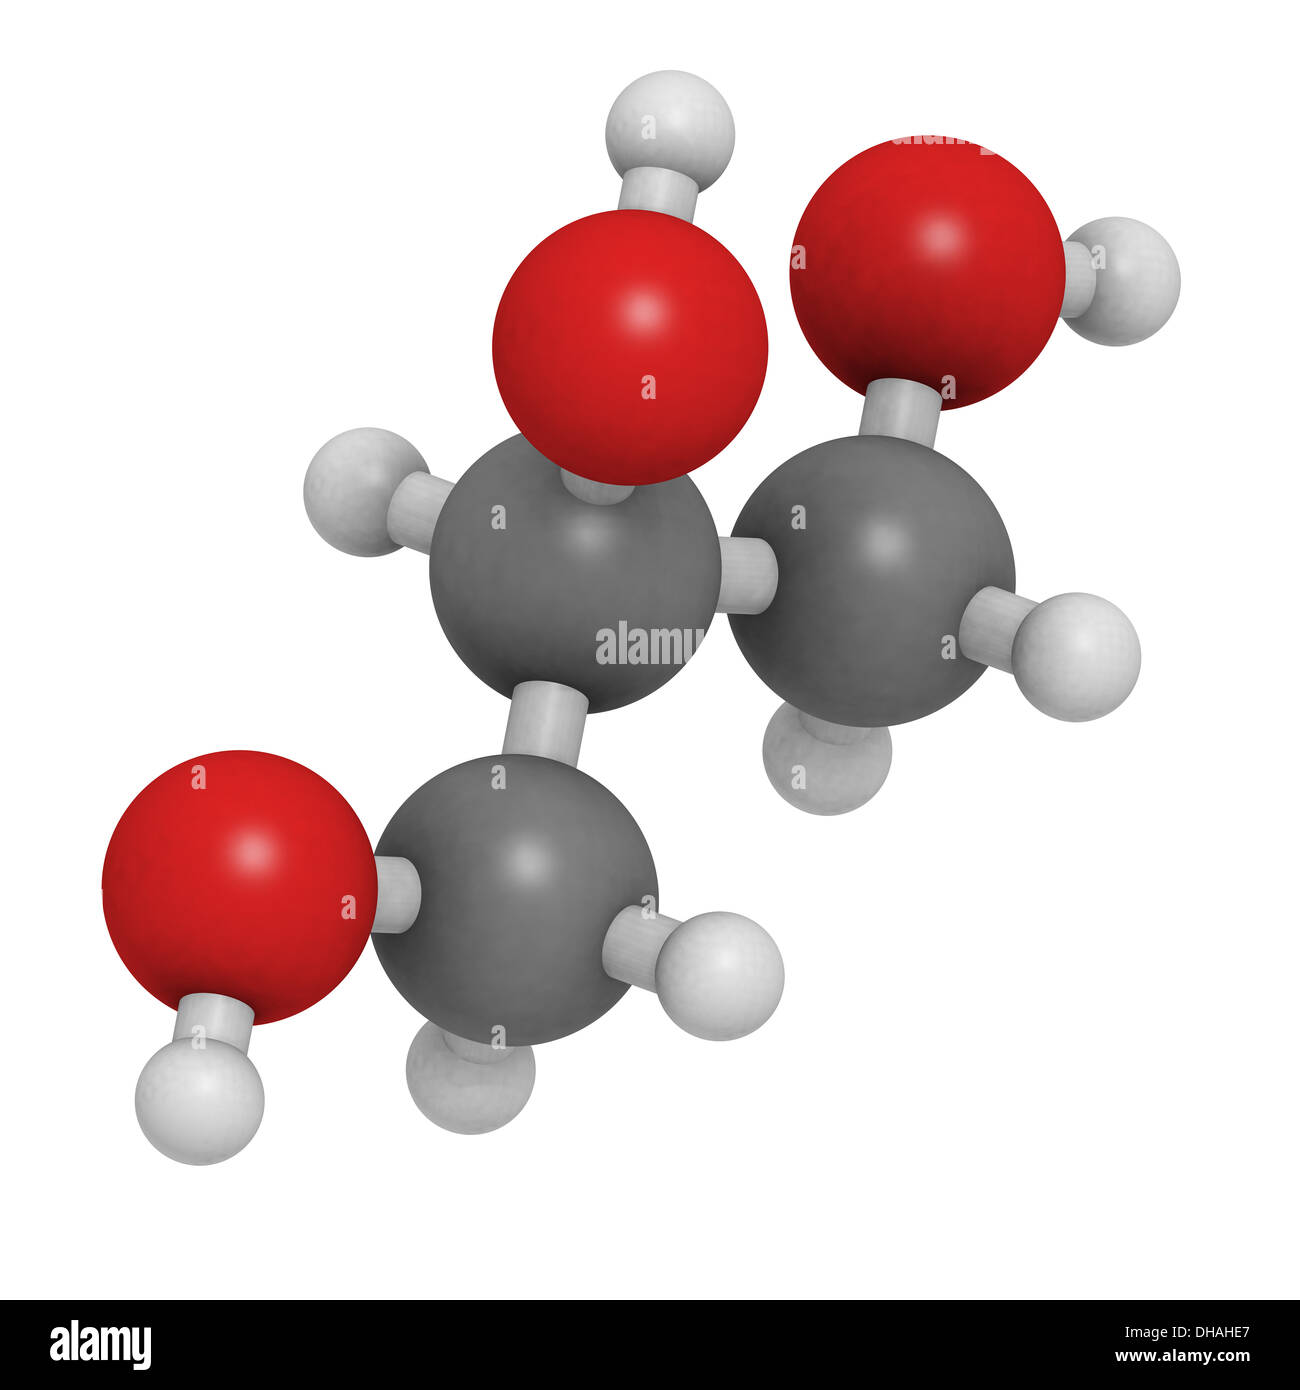 Glycerol Structure Stock Photos & Glycerol Structure Stock